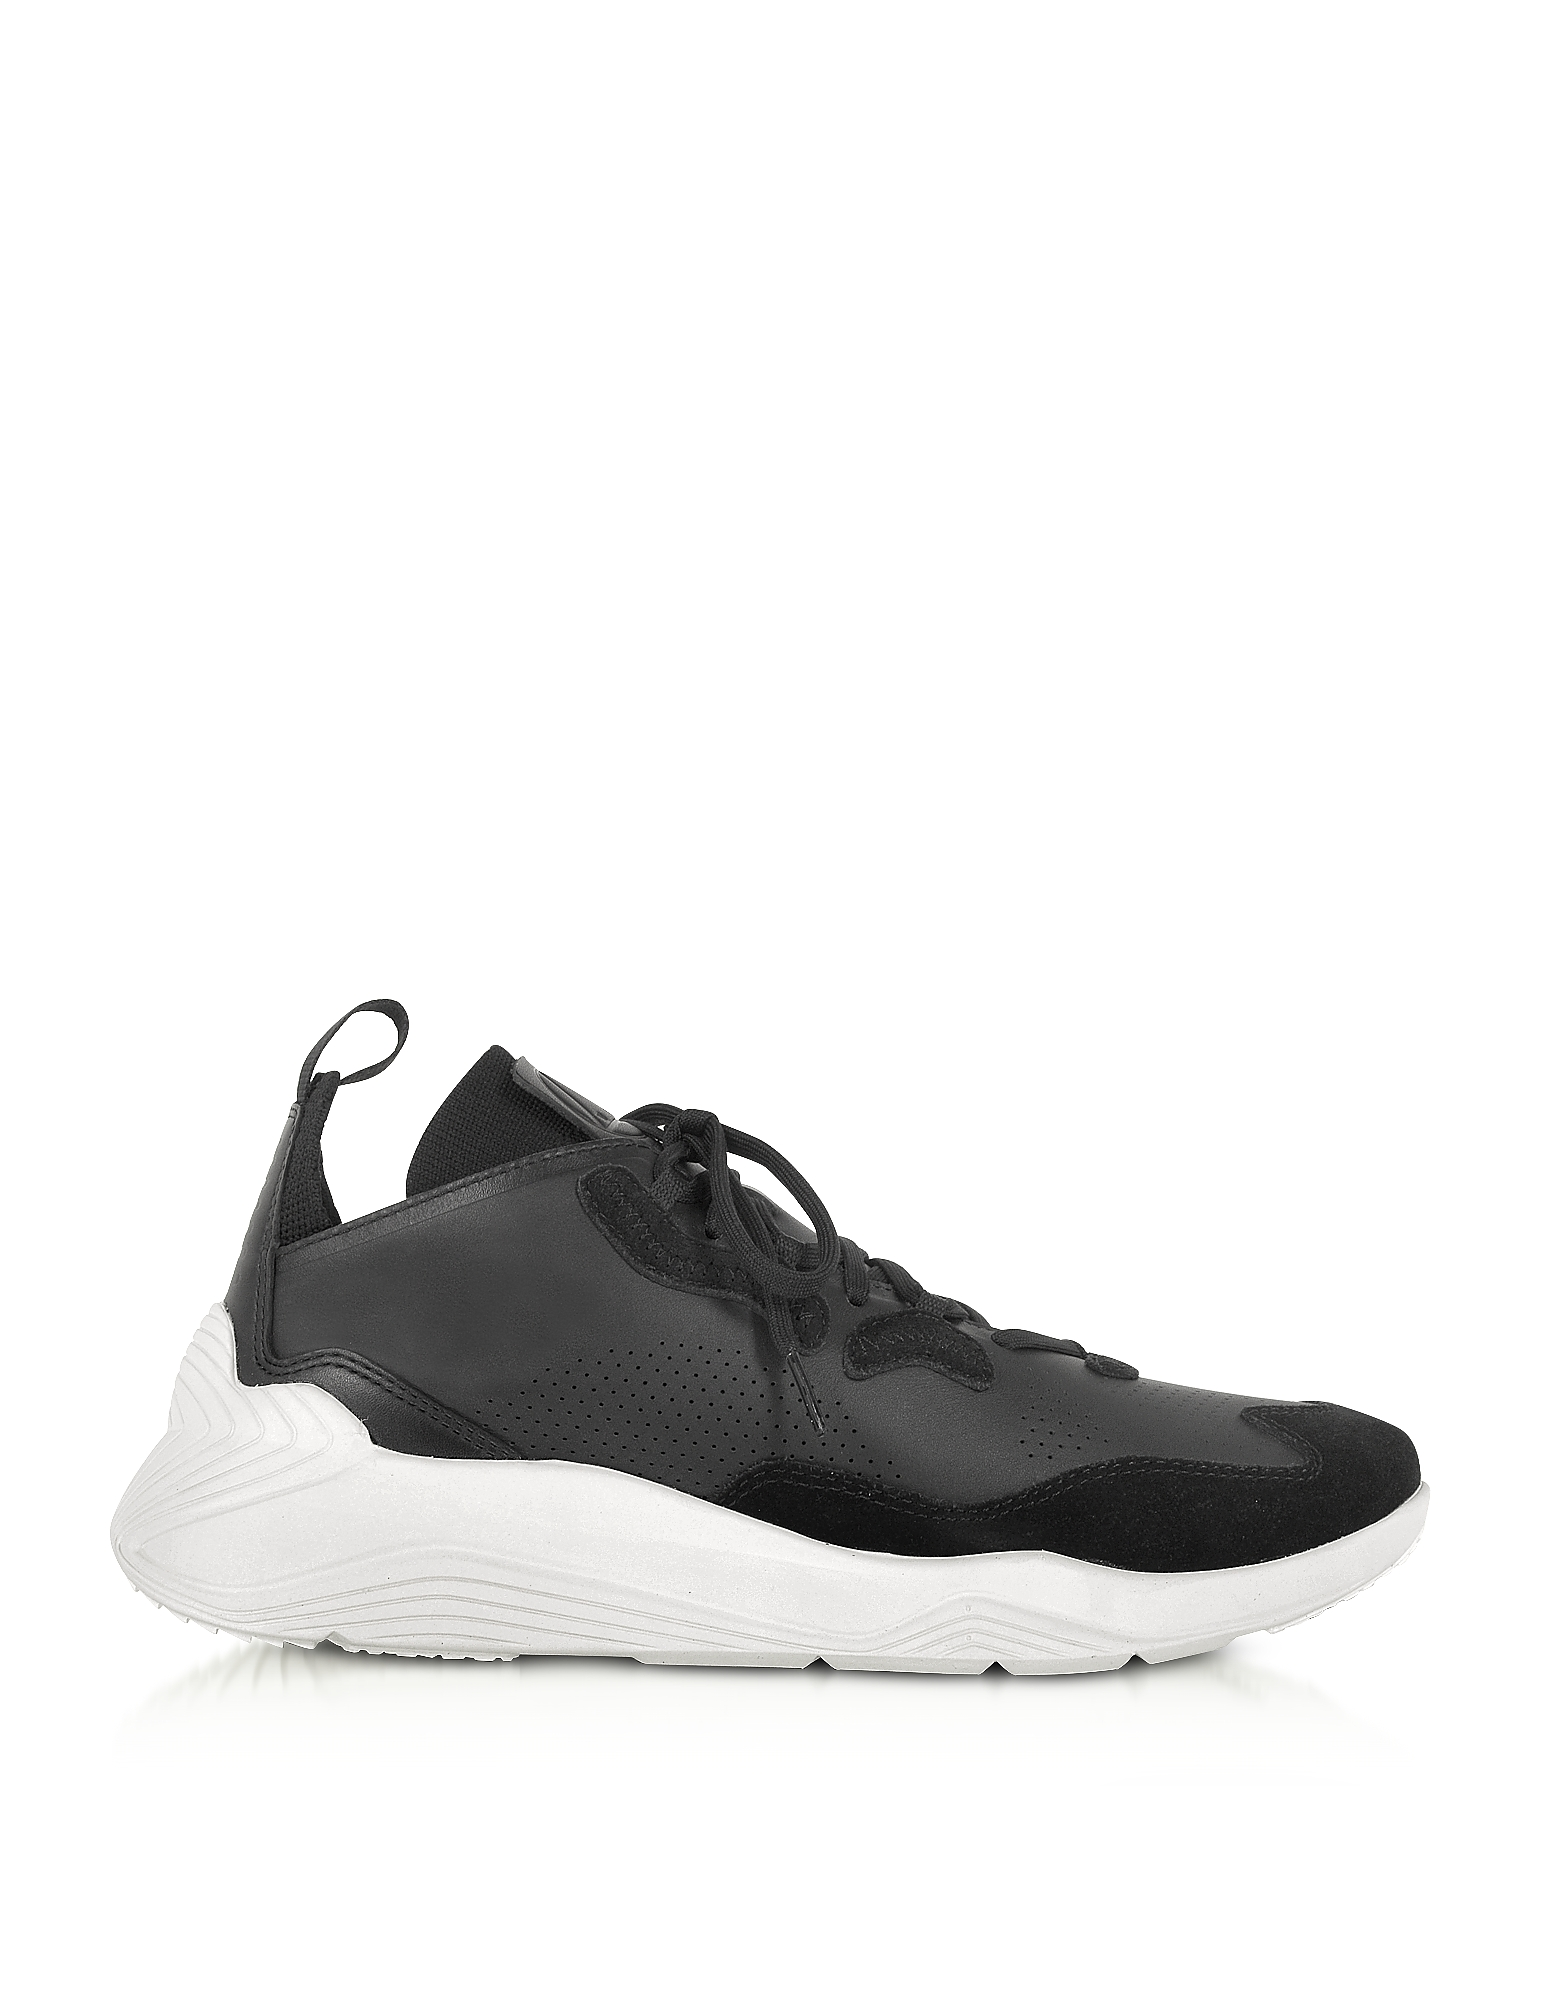 McQ Alexander McQueen Designer Shoes, Gishiki 3.0 Black Men's Sneakers